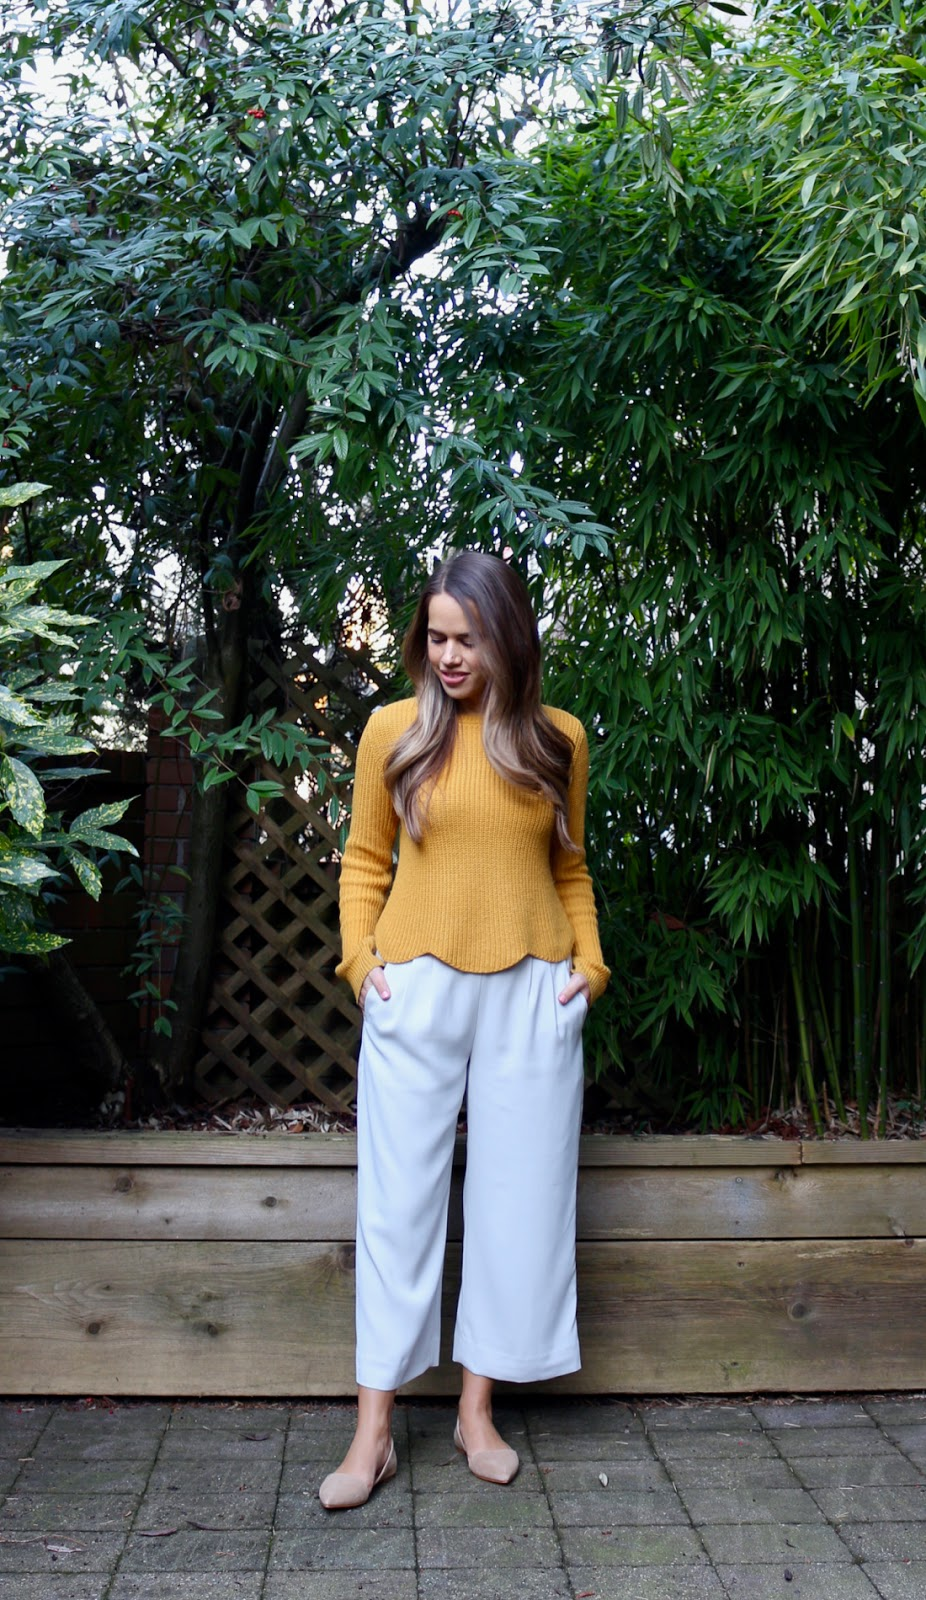 Jules in Flats - Cropped Scalloped Hem Sweater & J.Crew Culottes (Business Casual Spring Workwear on a Budget)